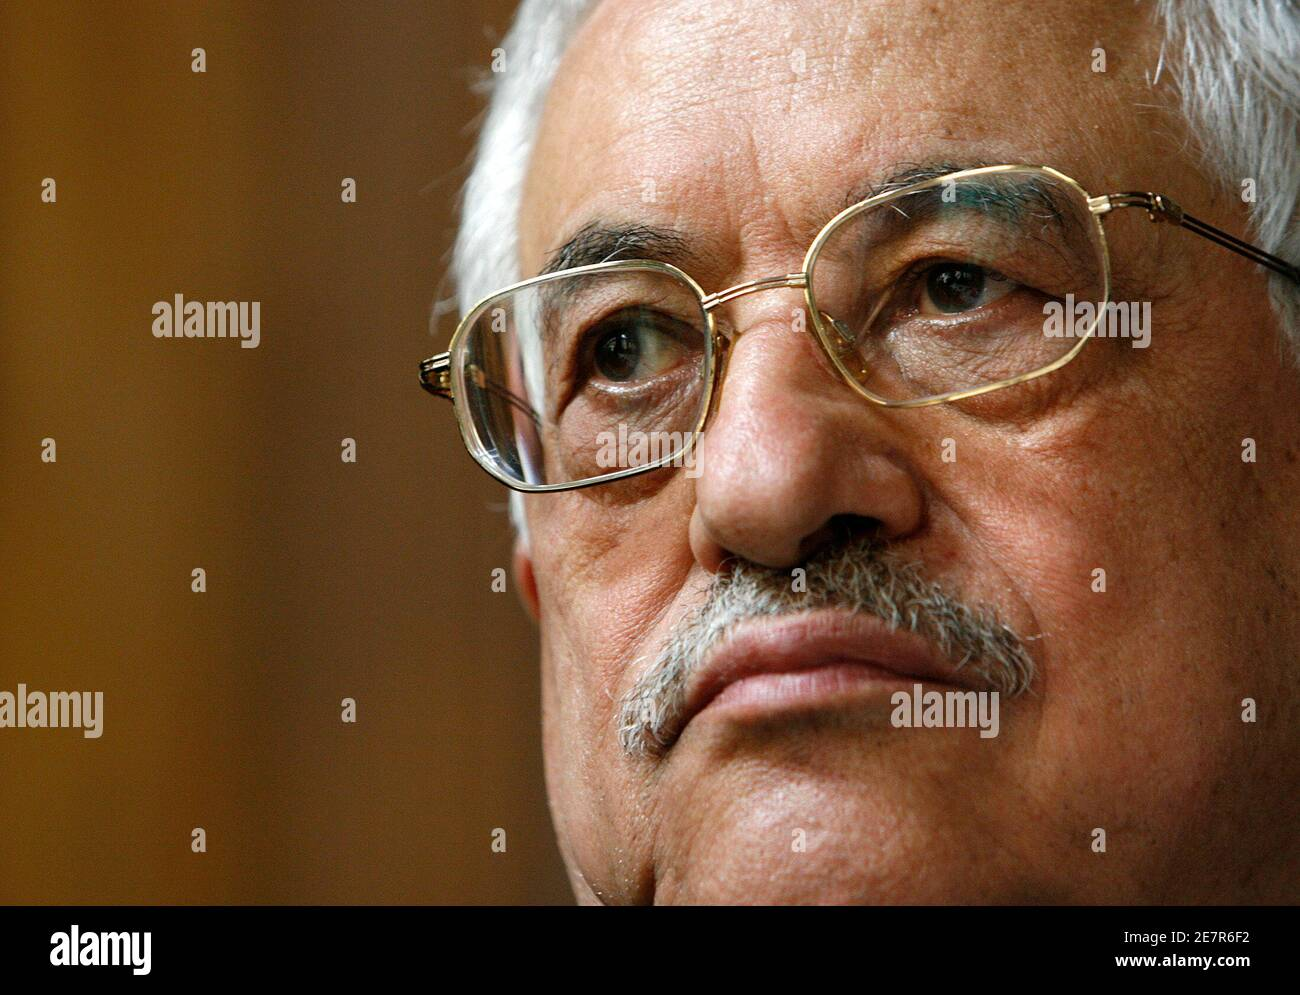 Palestinian President Mahmoud Abbas is pictured during a news conference at the Musee d'Art et d'Histoire in Geneva April 26, 2007. From April 27 to October 7, 2007 the Museum will hold an exhibition of more than 500 archaeological items recovered from the Gaza strip, revealing  multiple facets of this regions heritage. REUTERS/Denis Balibouse (SWITZERLAND) Foto de stock